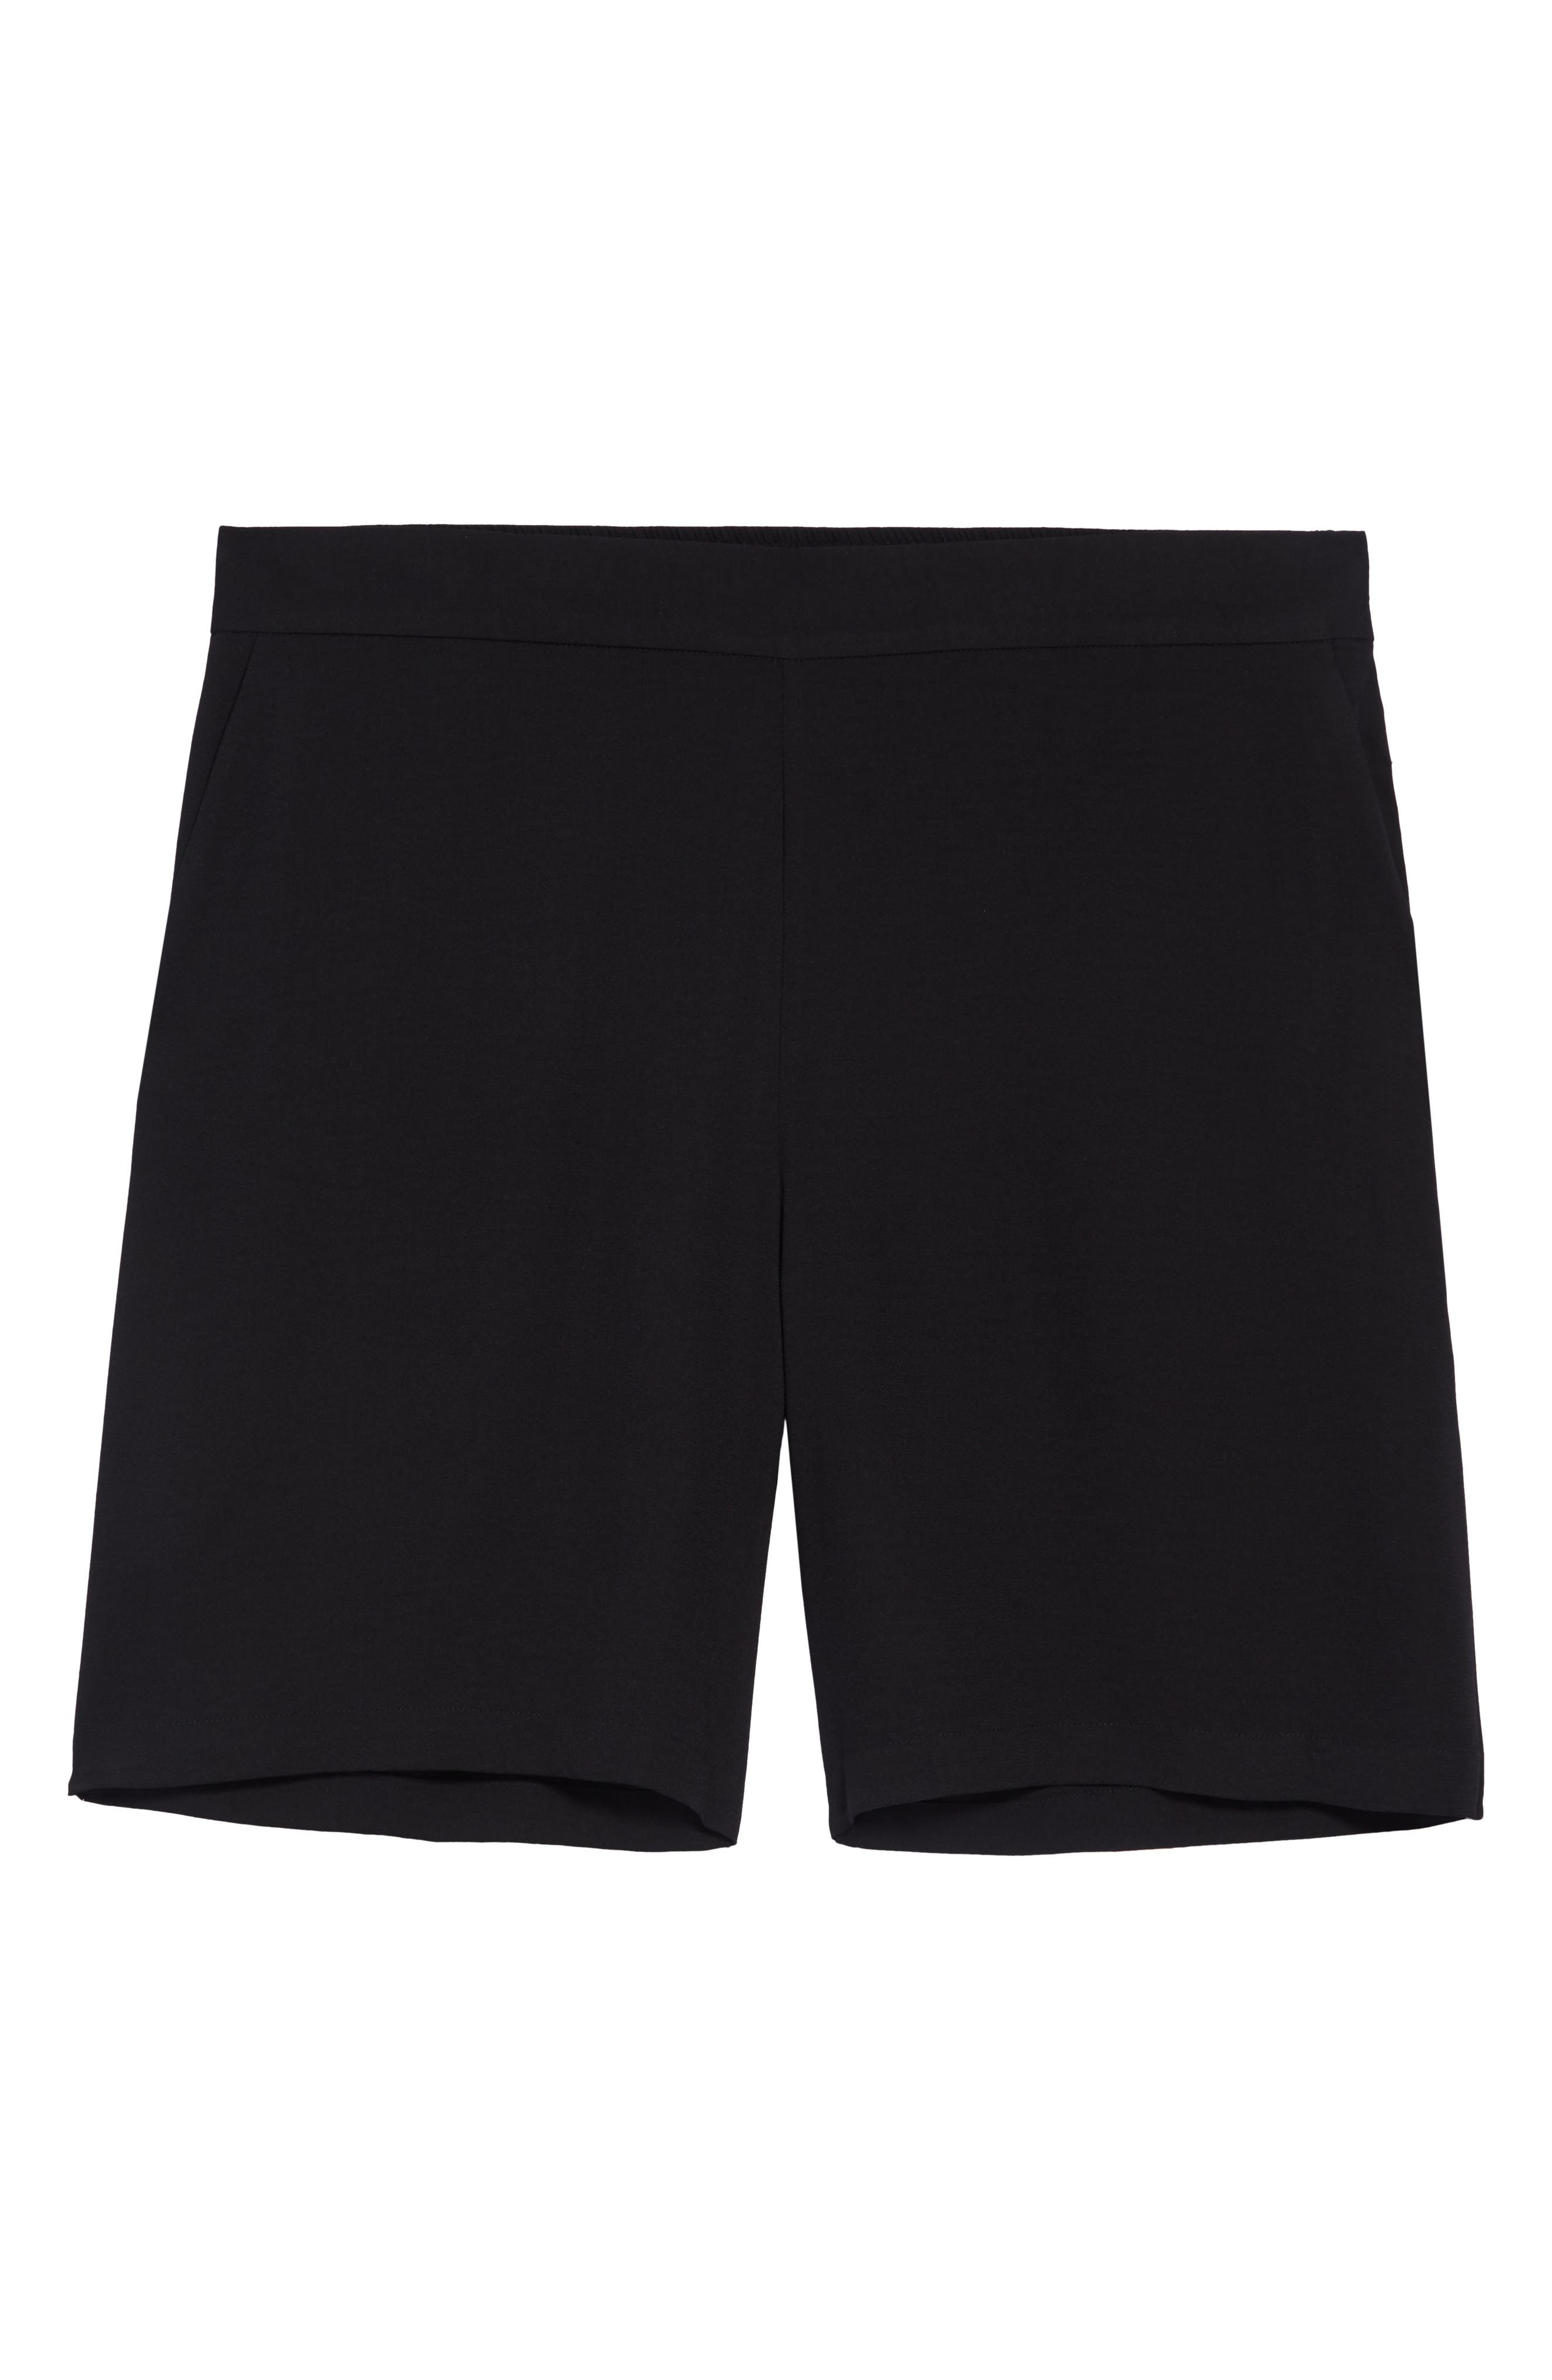 Gathered detailing shapes the back of easygoing Bermuda shorts that go from sunny days to warm nights out. Style Name: Halogen Gathered Bermuda Shorts. Style Number: 5988048. Available in stores.